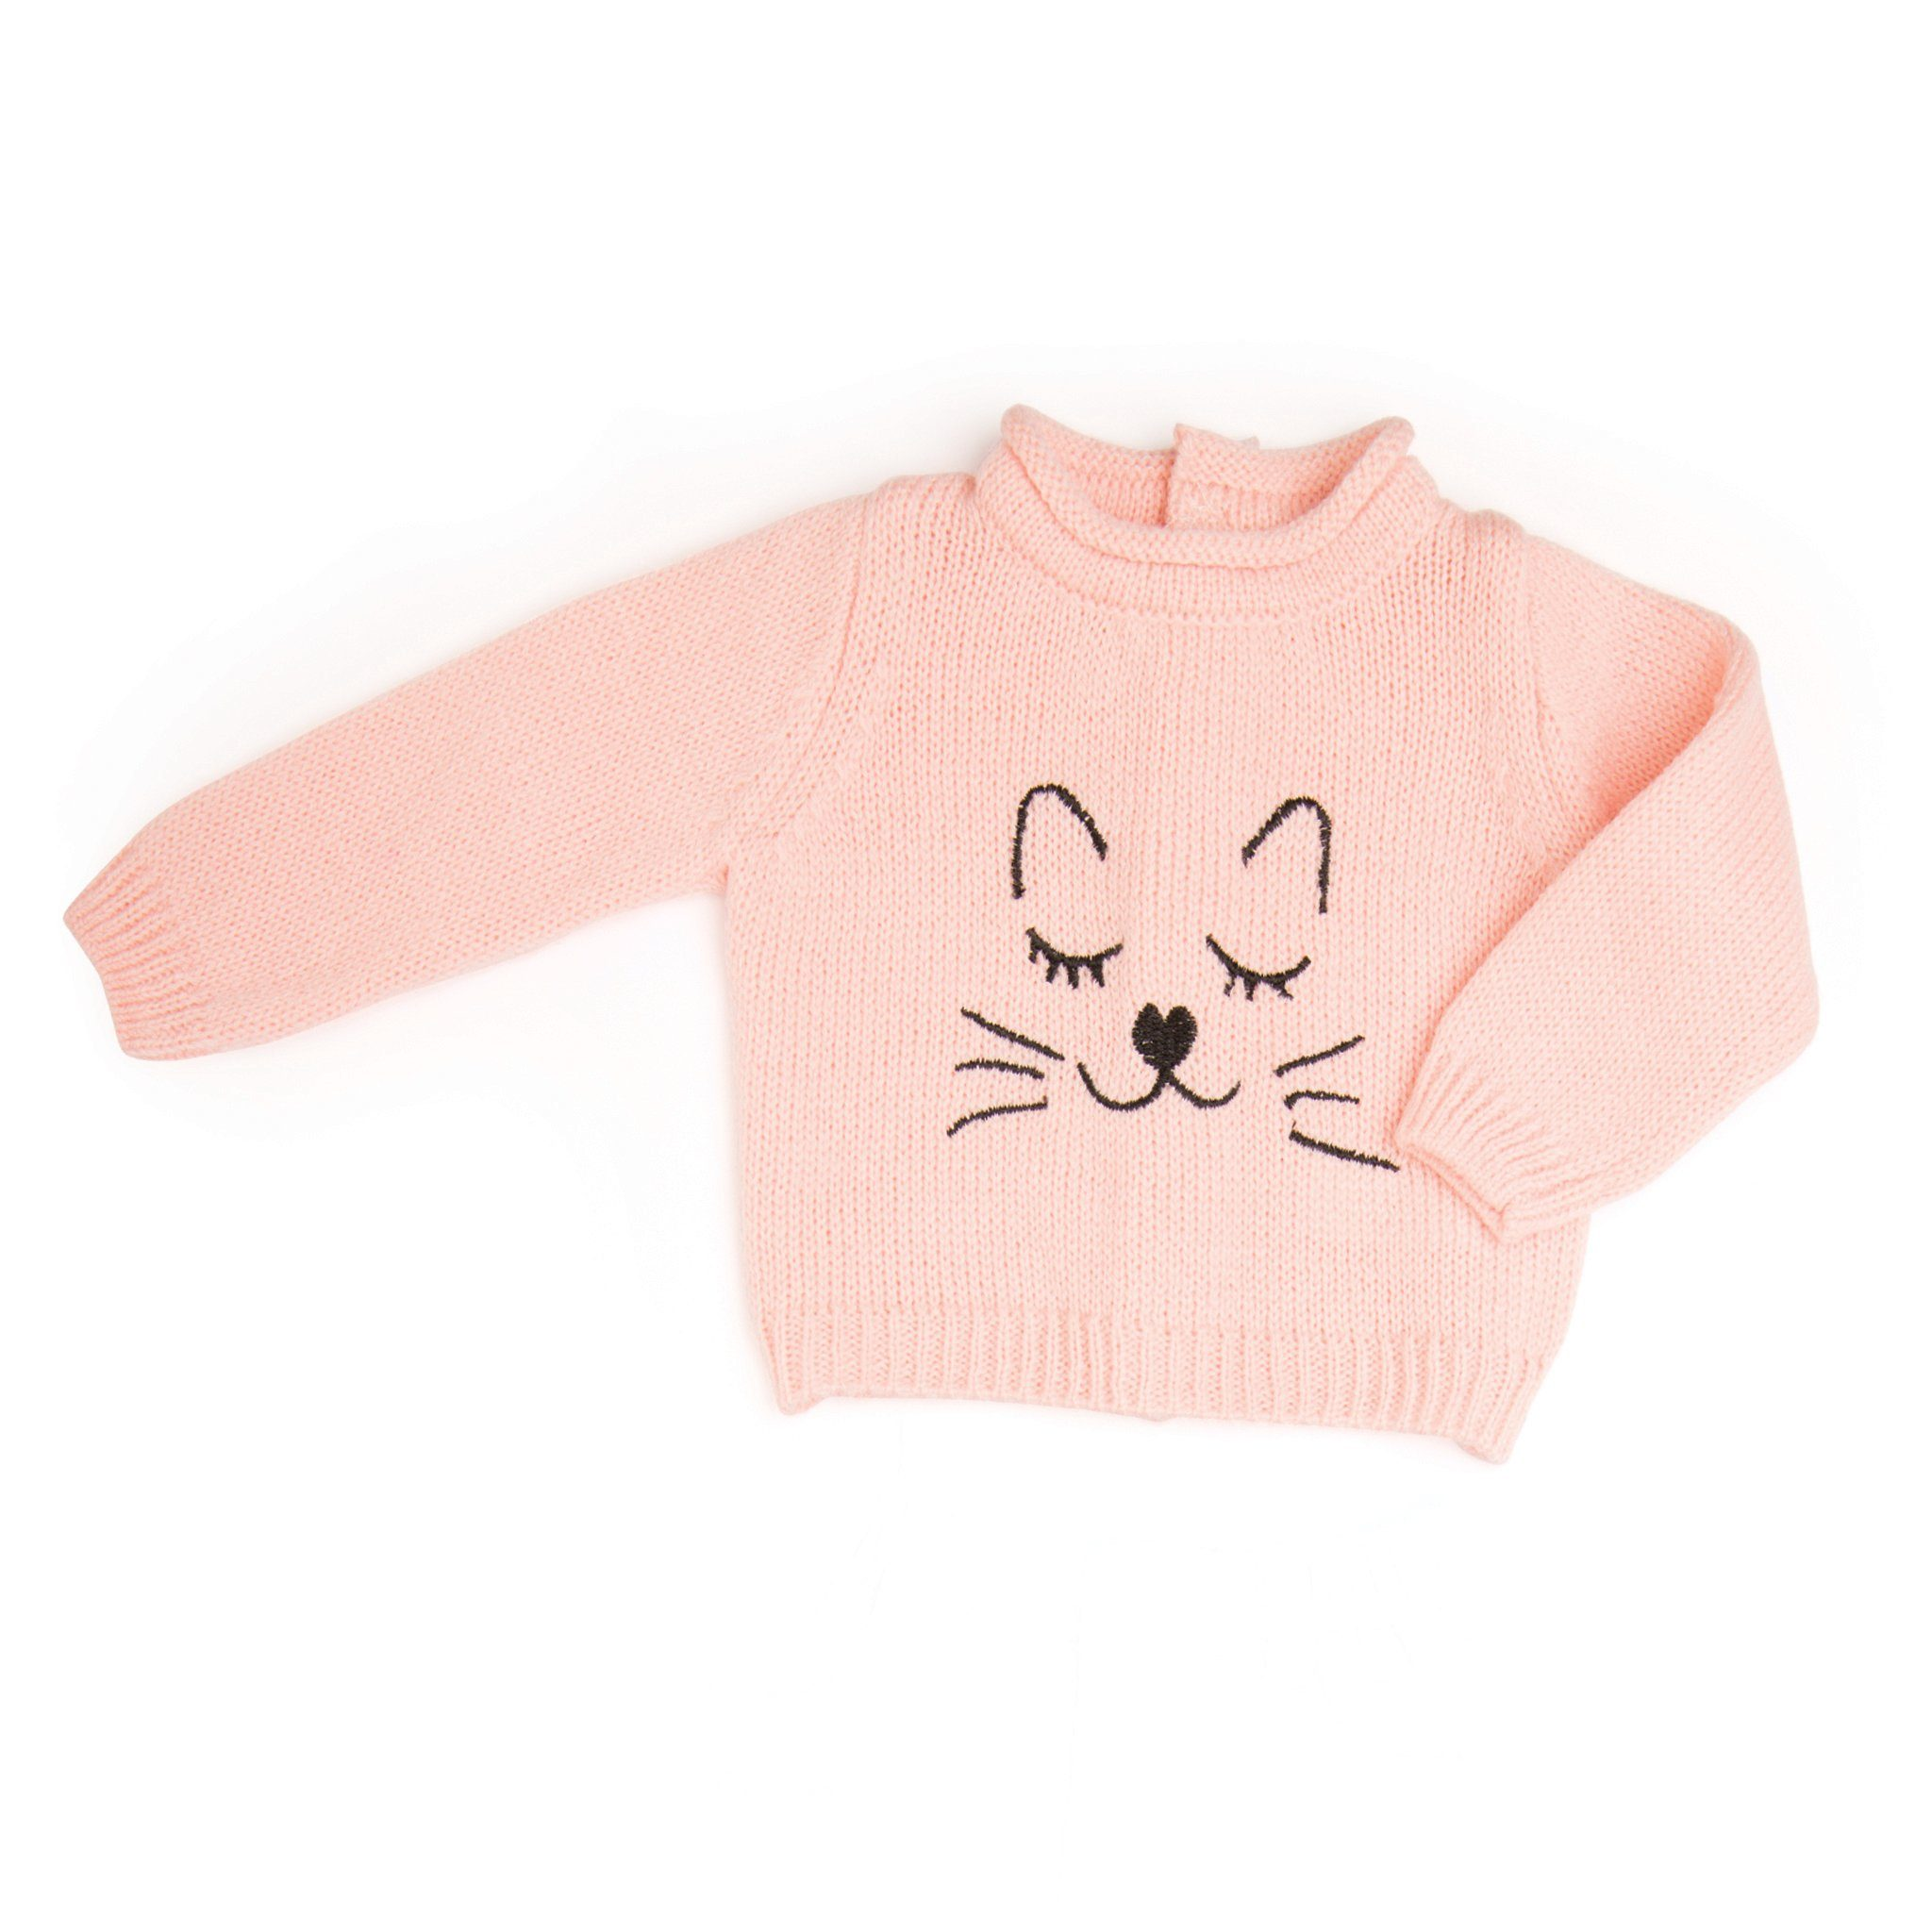 The Cat's Meow pink sweater with embroidered cat face fits all 18 inch dolls.